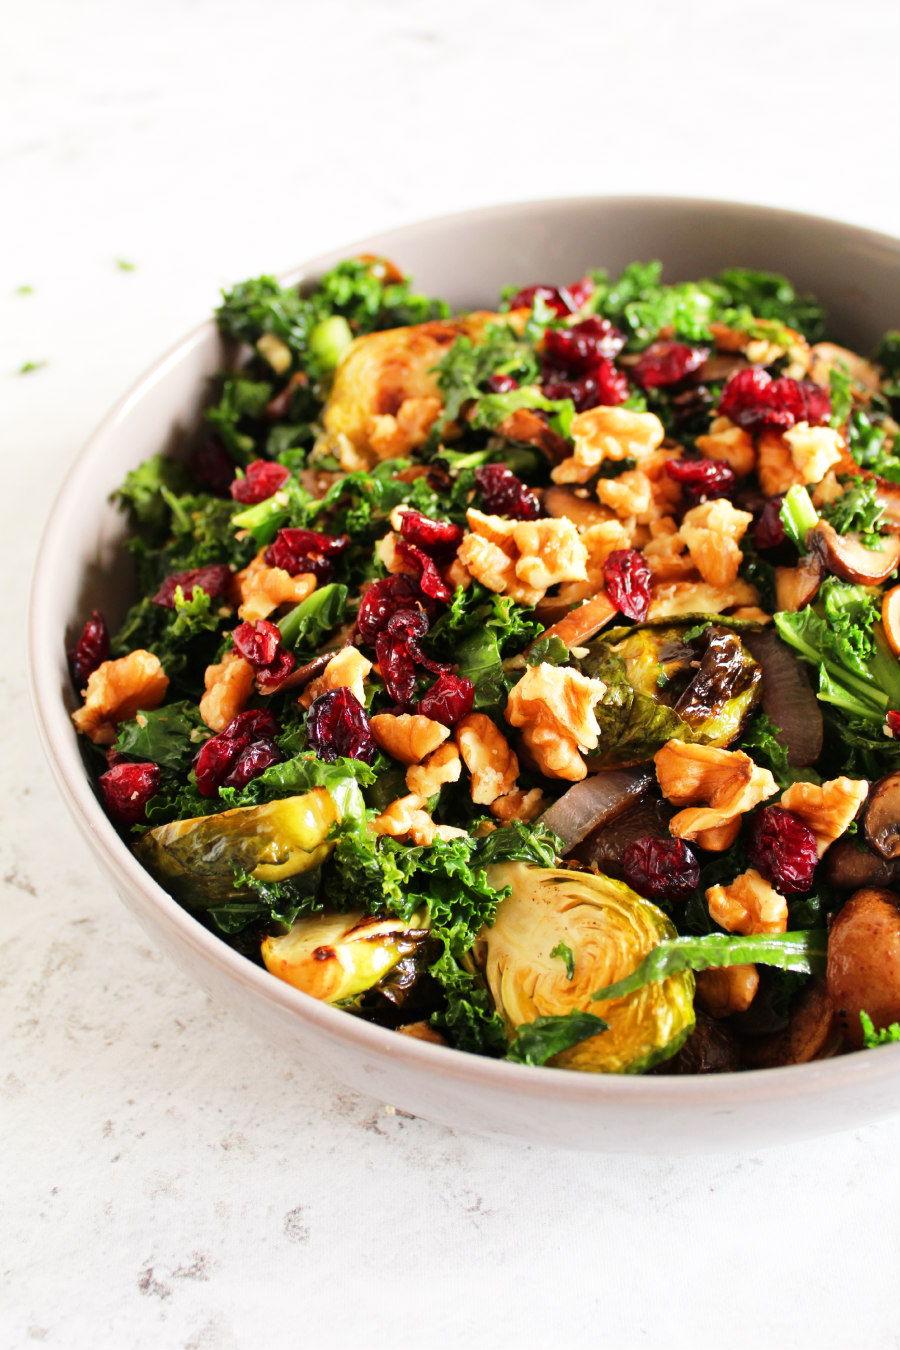 roasted brussels sprouts and kale salad